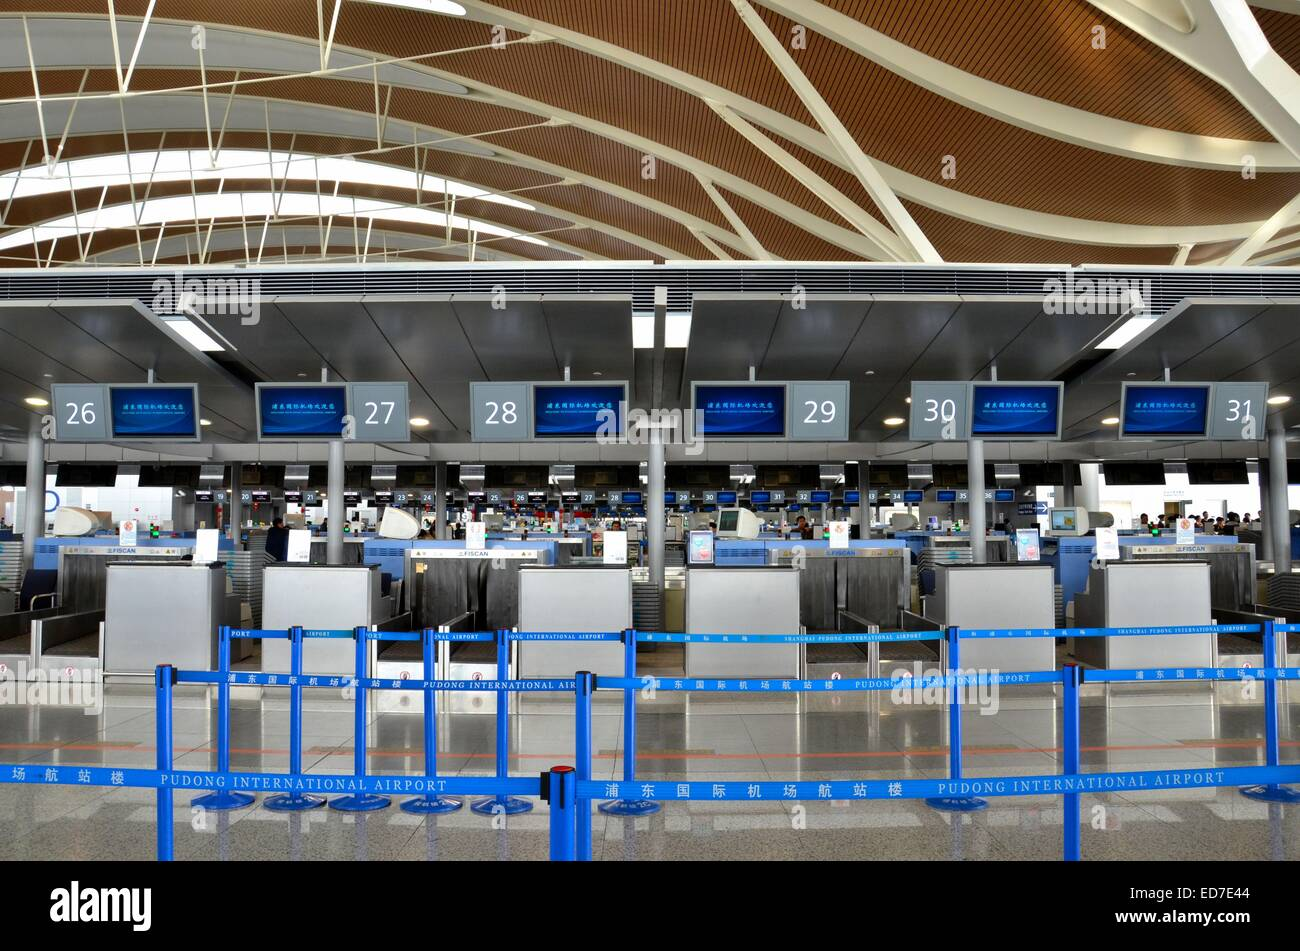 Empty check in counters at Shanghai Pudong International Airport China - Stock Image